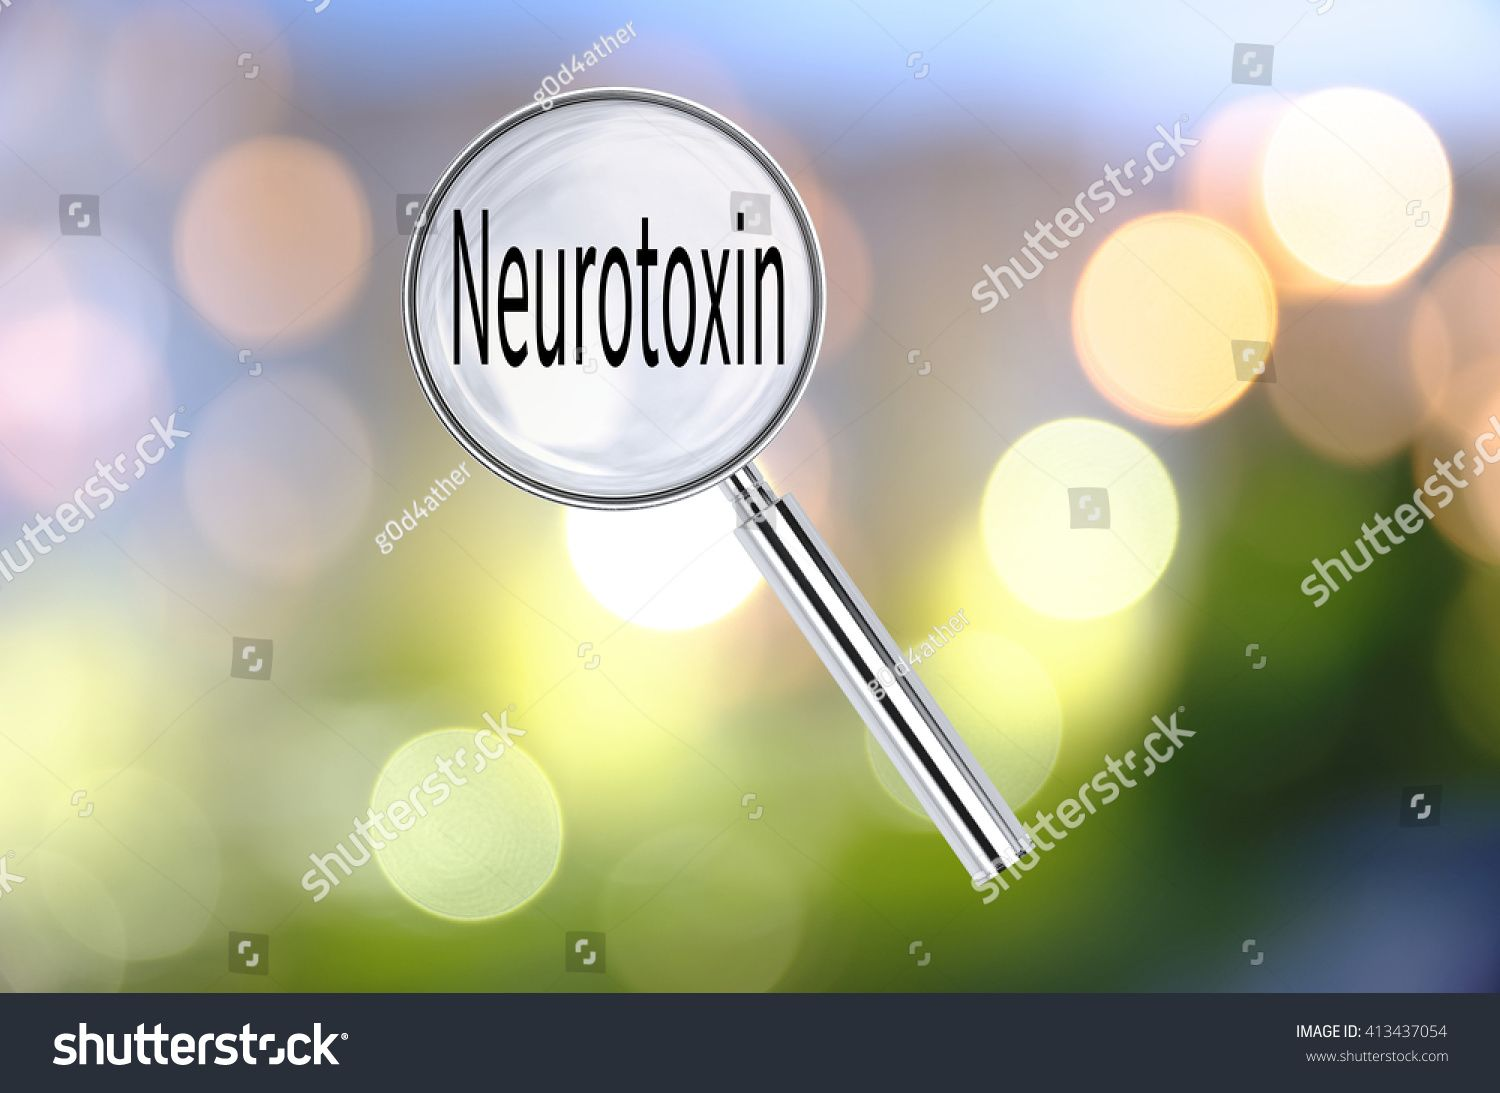 Magnifying lens over background with text Neurotoxin, with the blurred lights visible in the background. 3D rendering. #Ad , #Aff, #background#text#Magnifying#lens